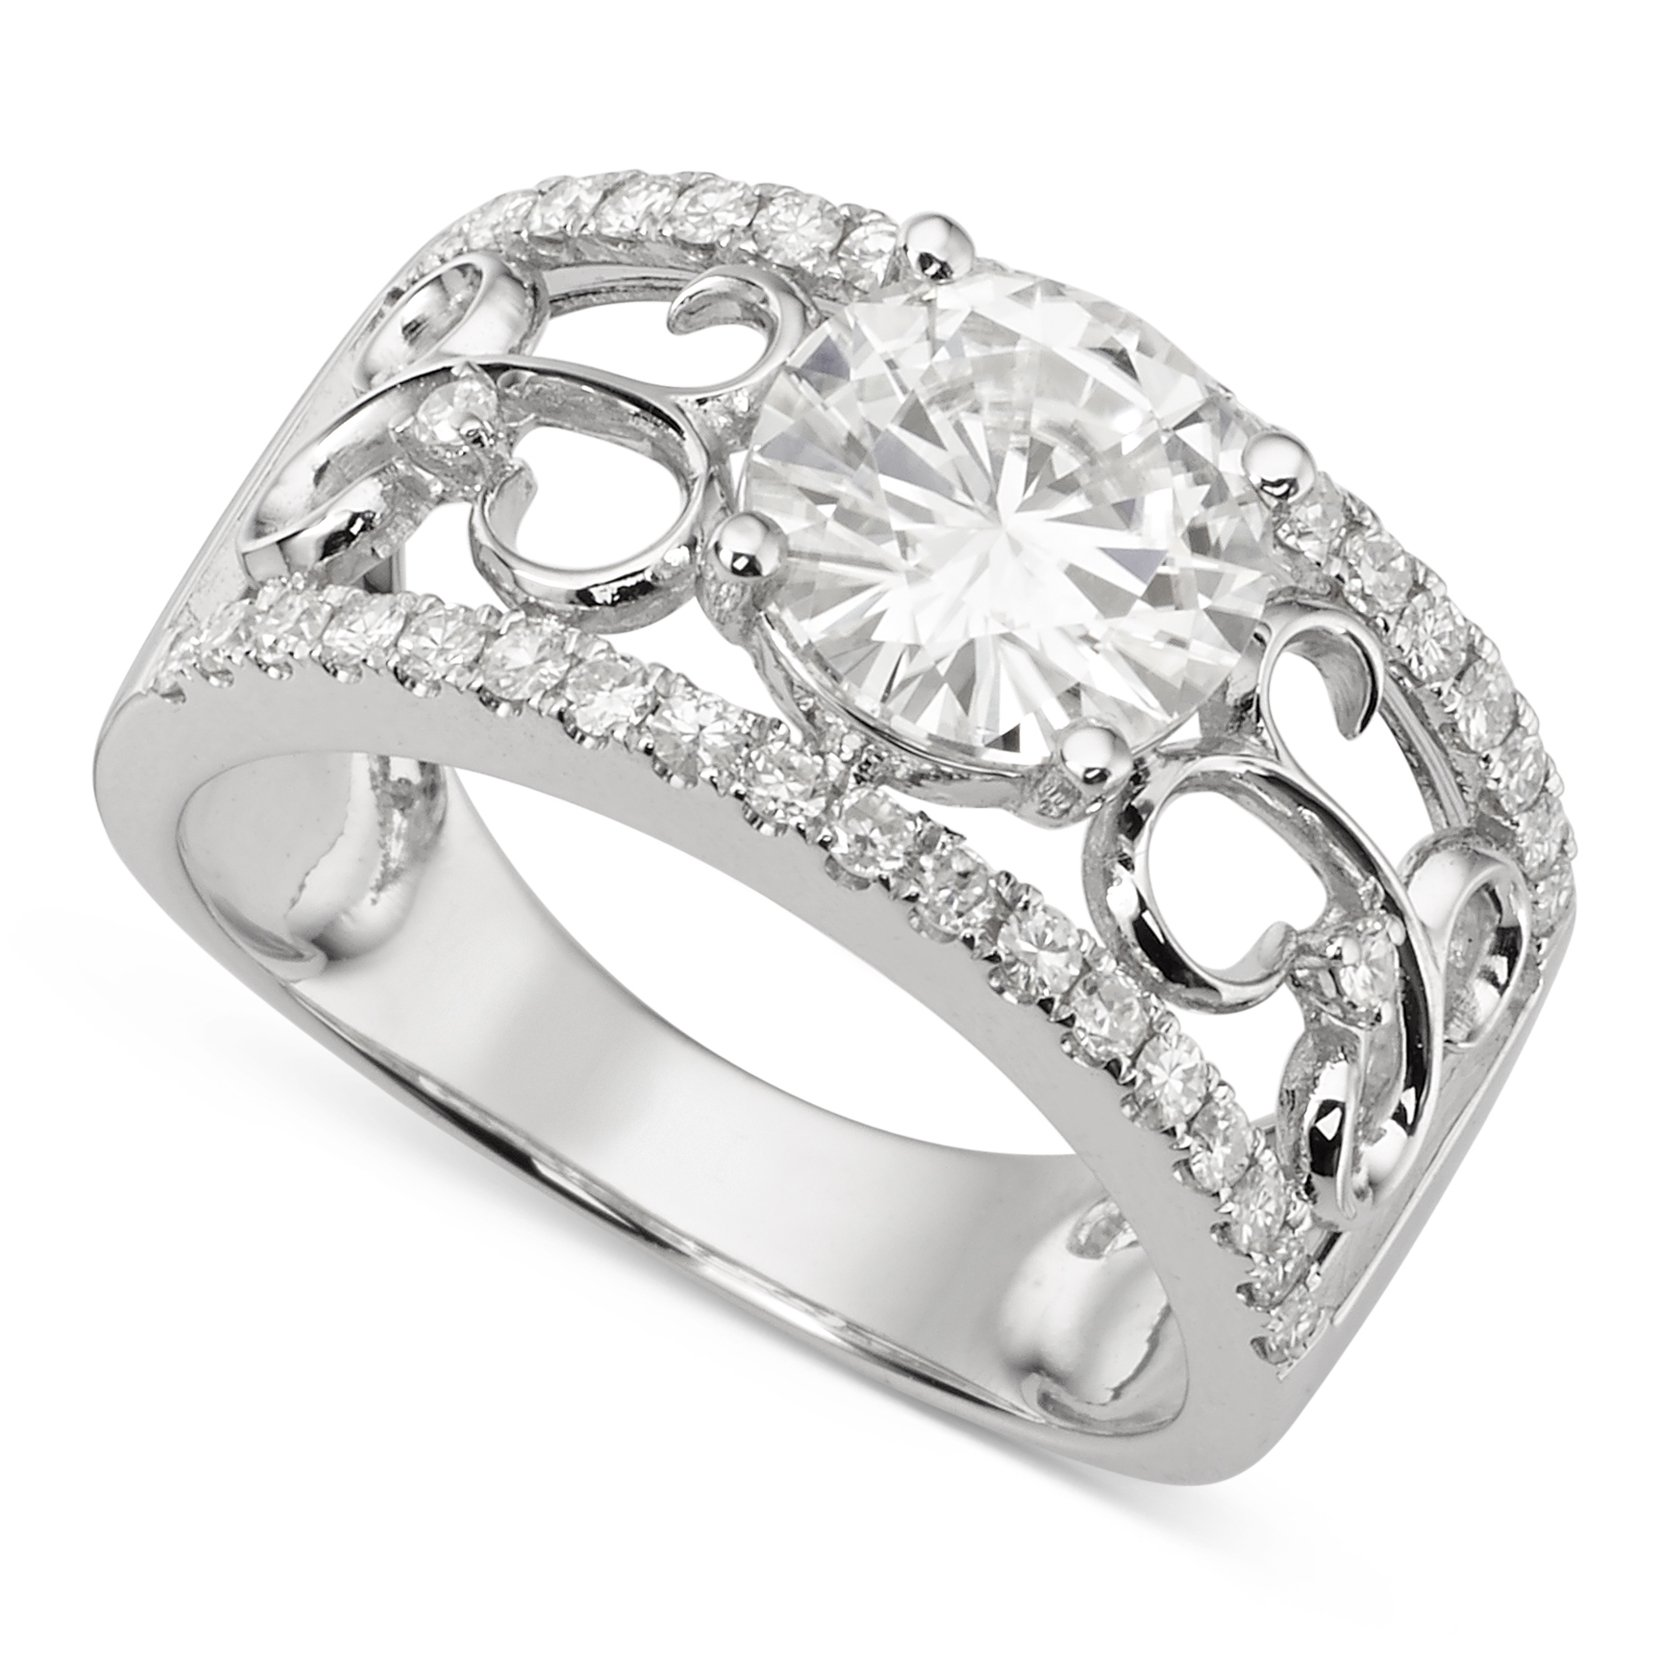 Forever Brilliant White Gold Round 8.0mm Moissanite Ring size 6, 2.28cttw DEW By Charles & Colvard by Charles & Colvard